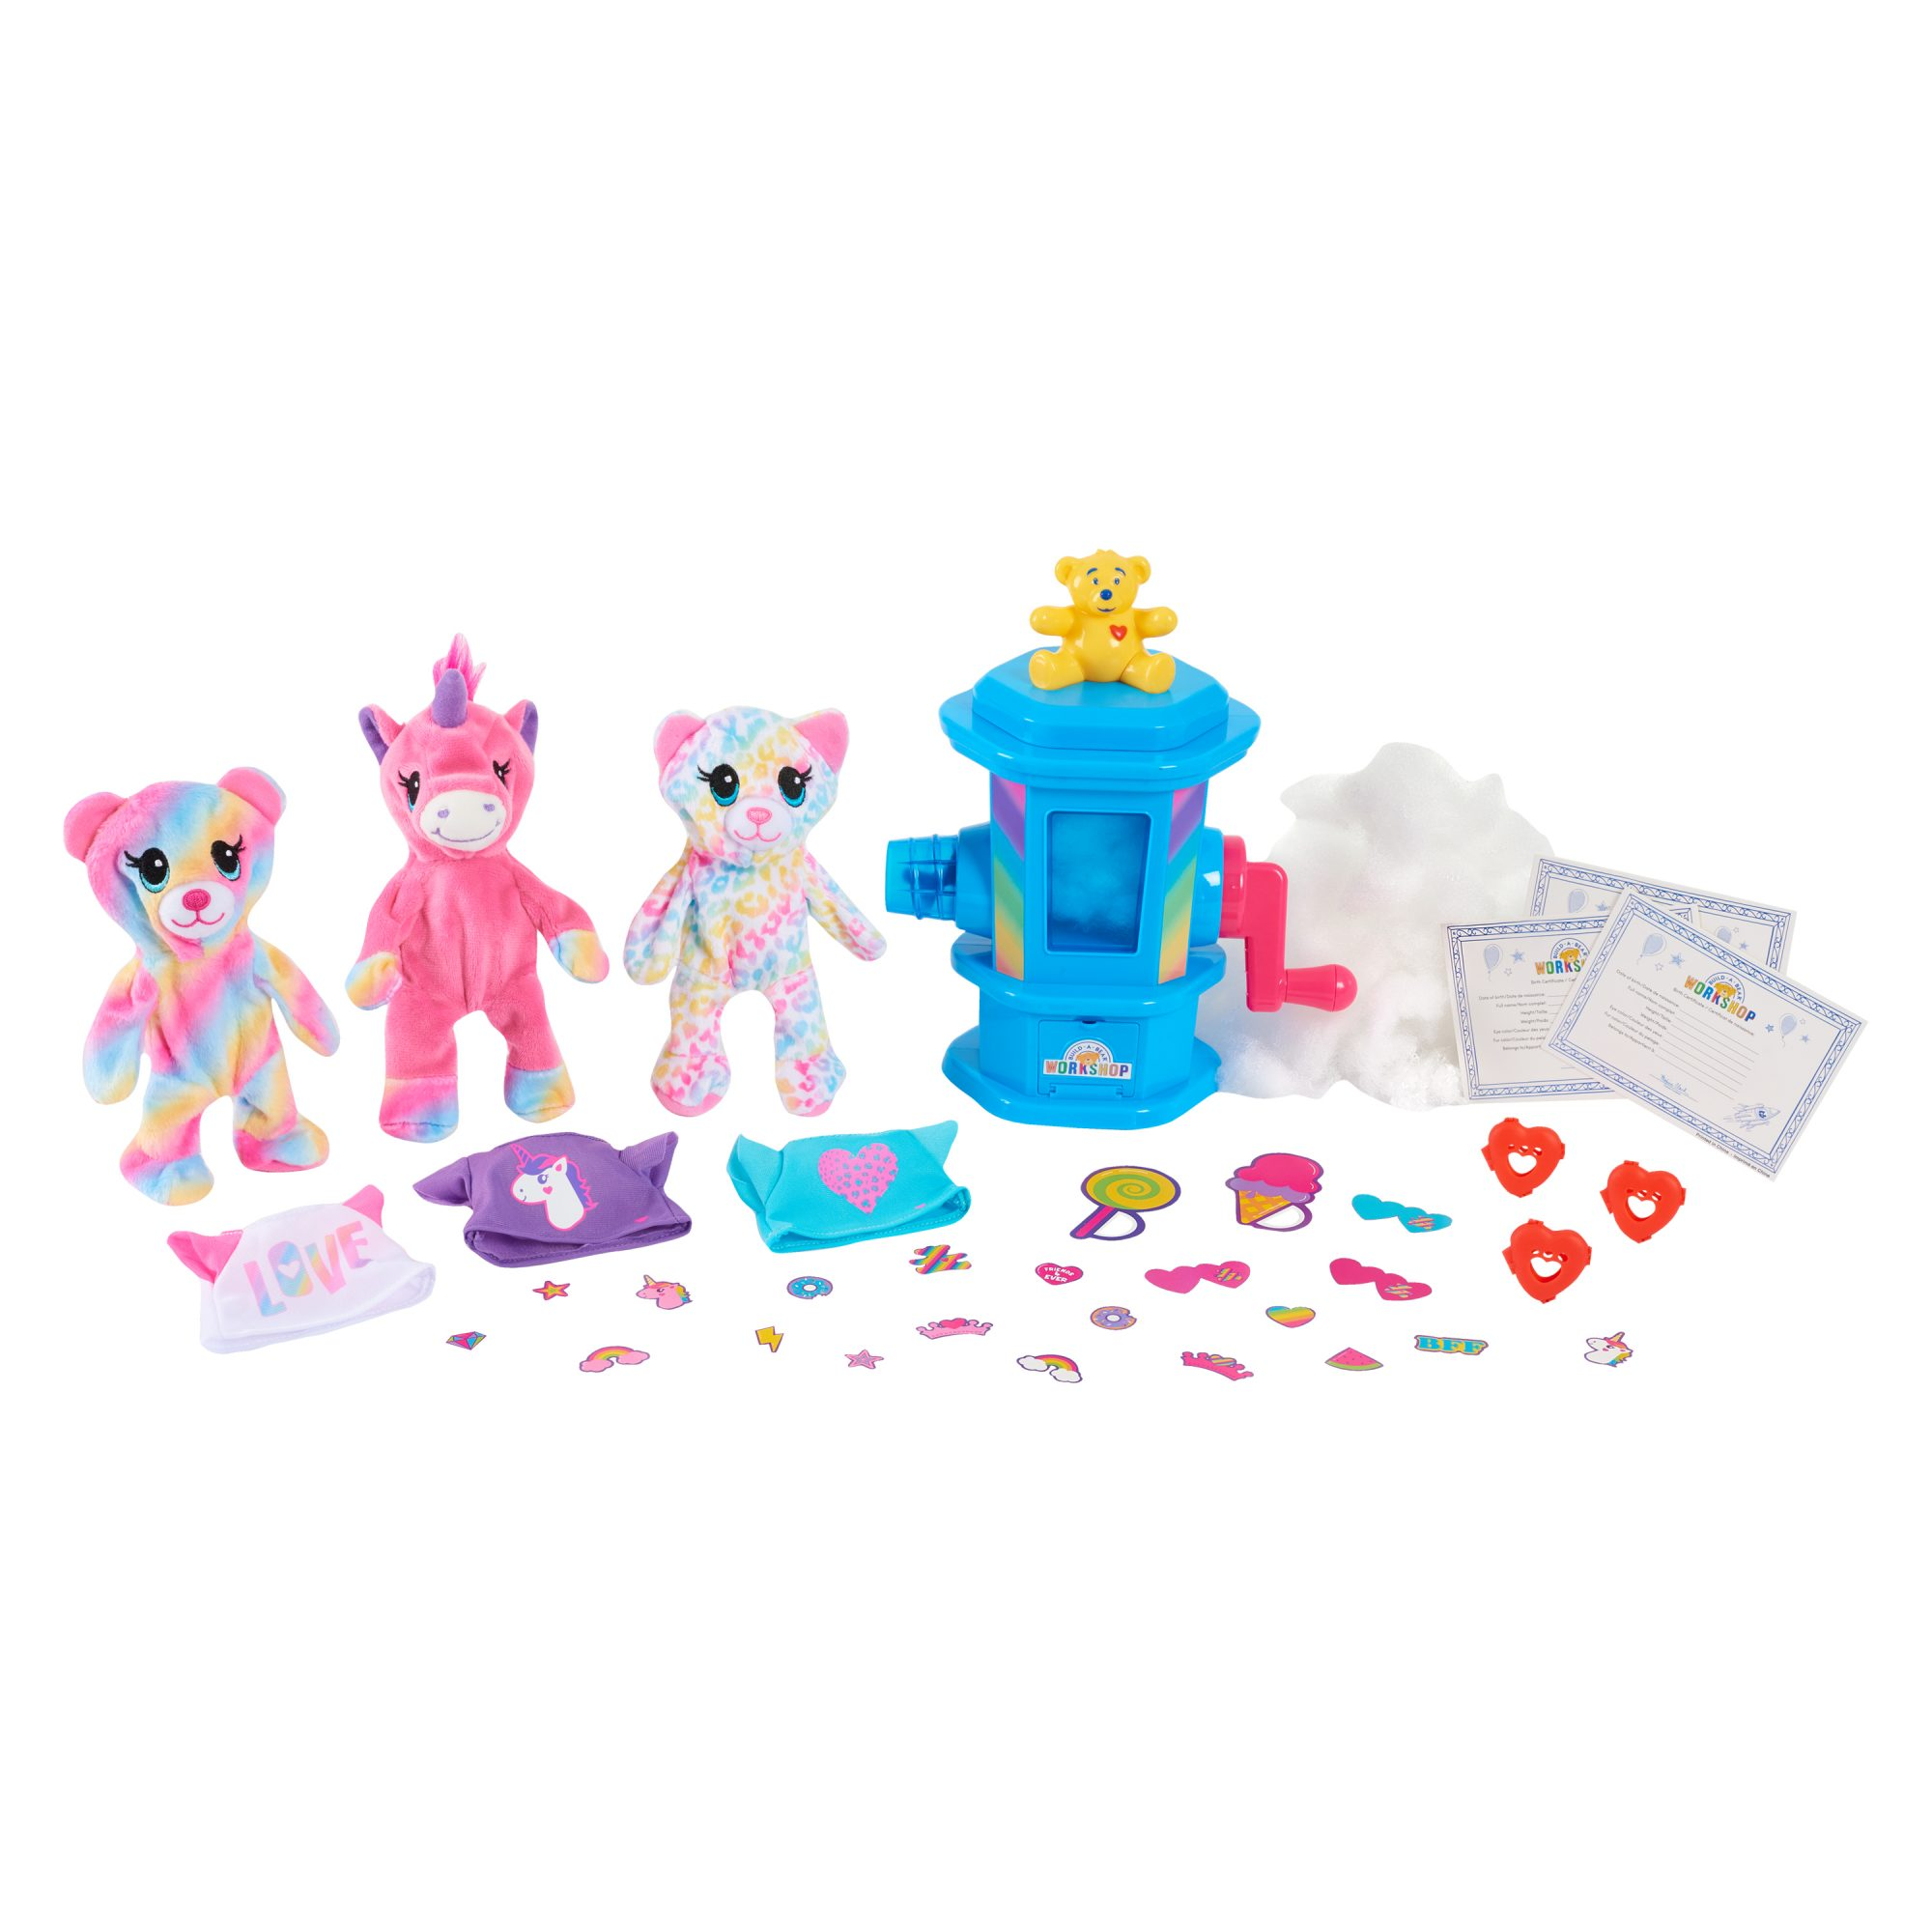 Build-A-Bear Workshop Stuffing Station